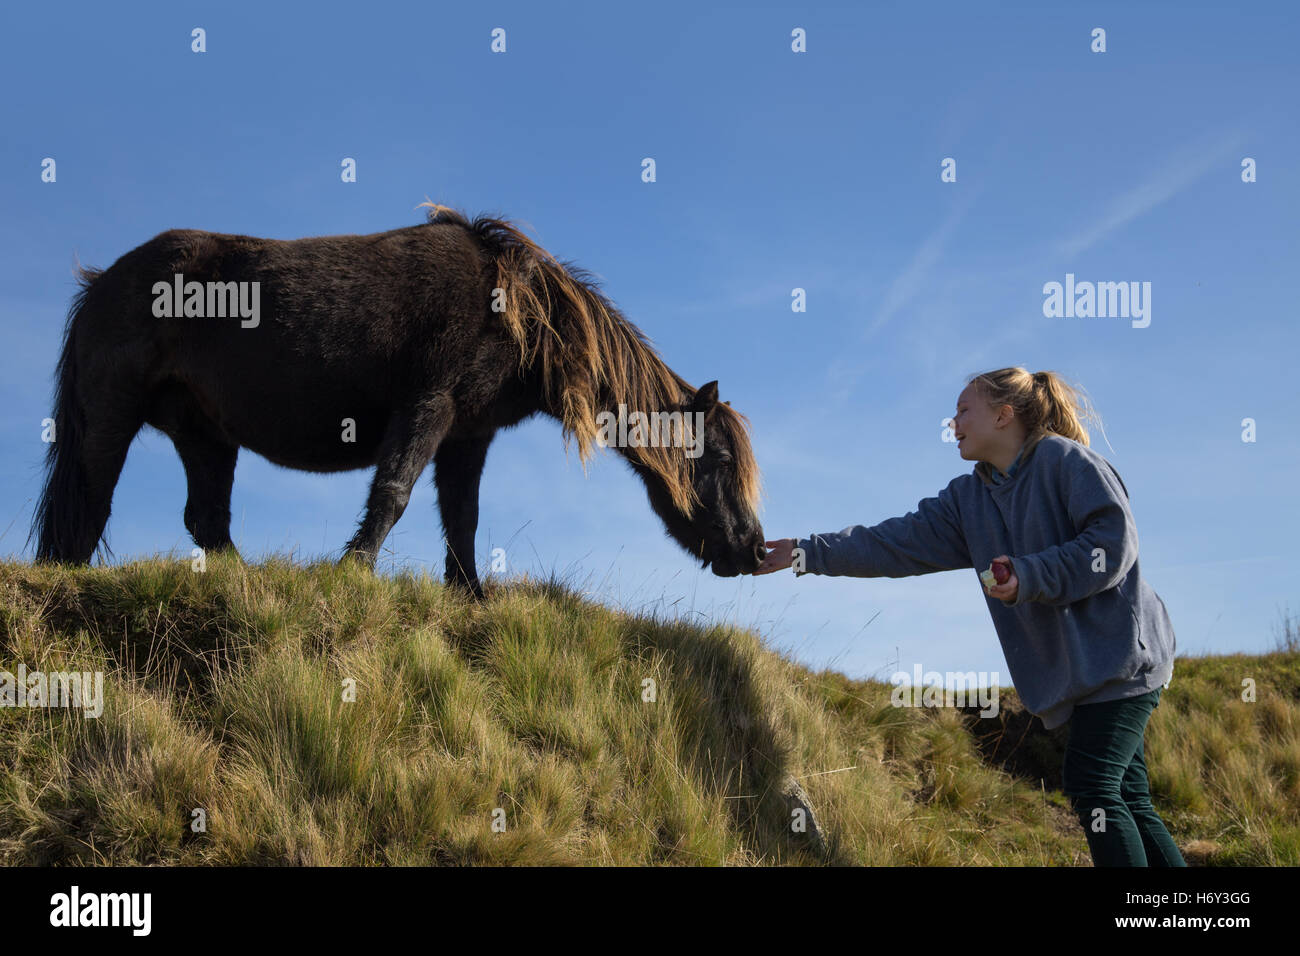 A girl feeds an apple to a dartmoor pony, with a blue sky backdrop - Stock Image